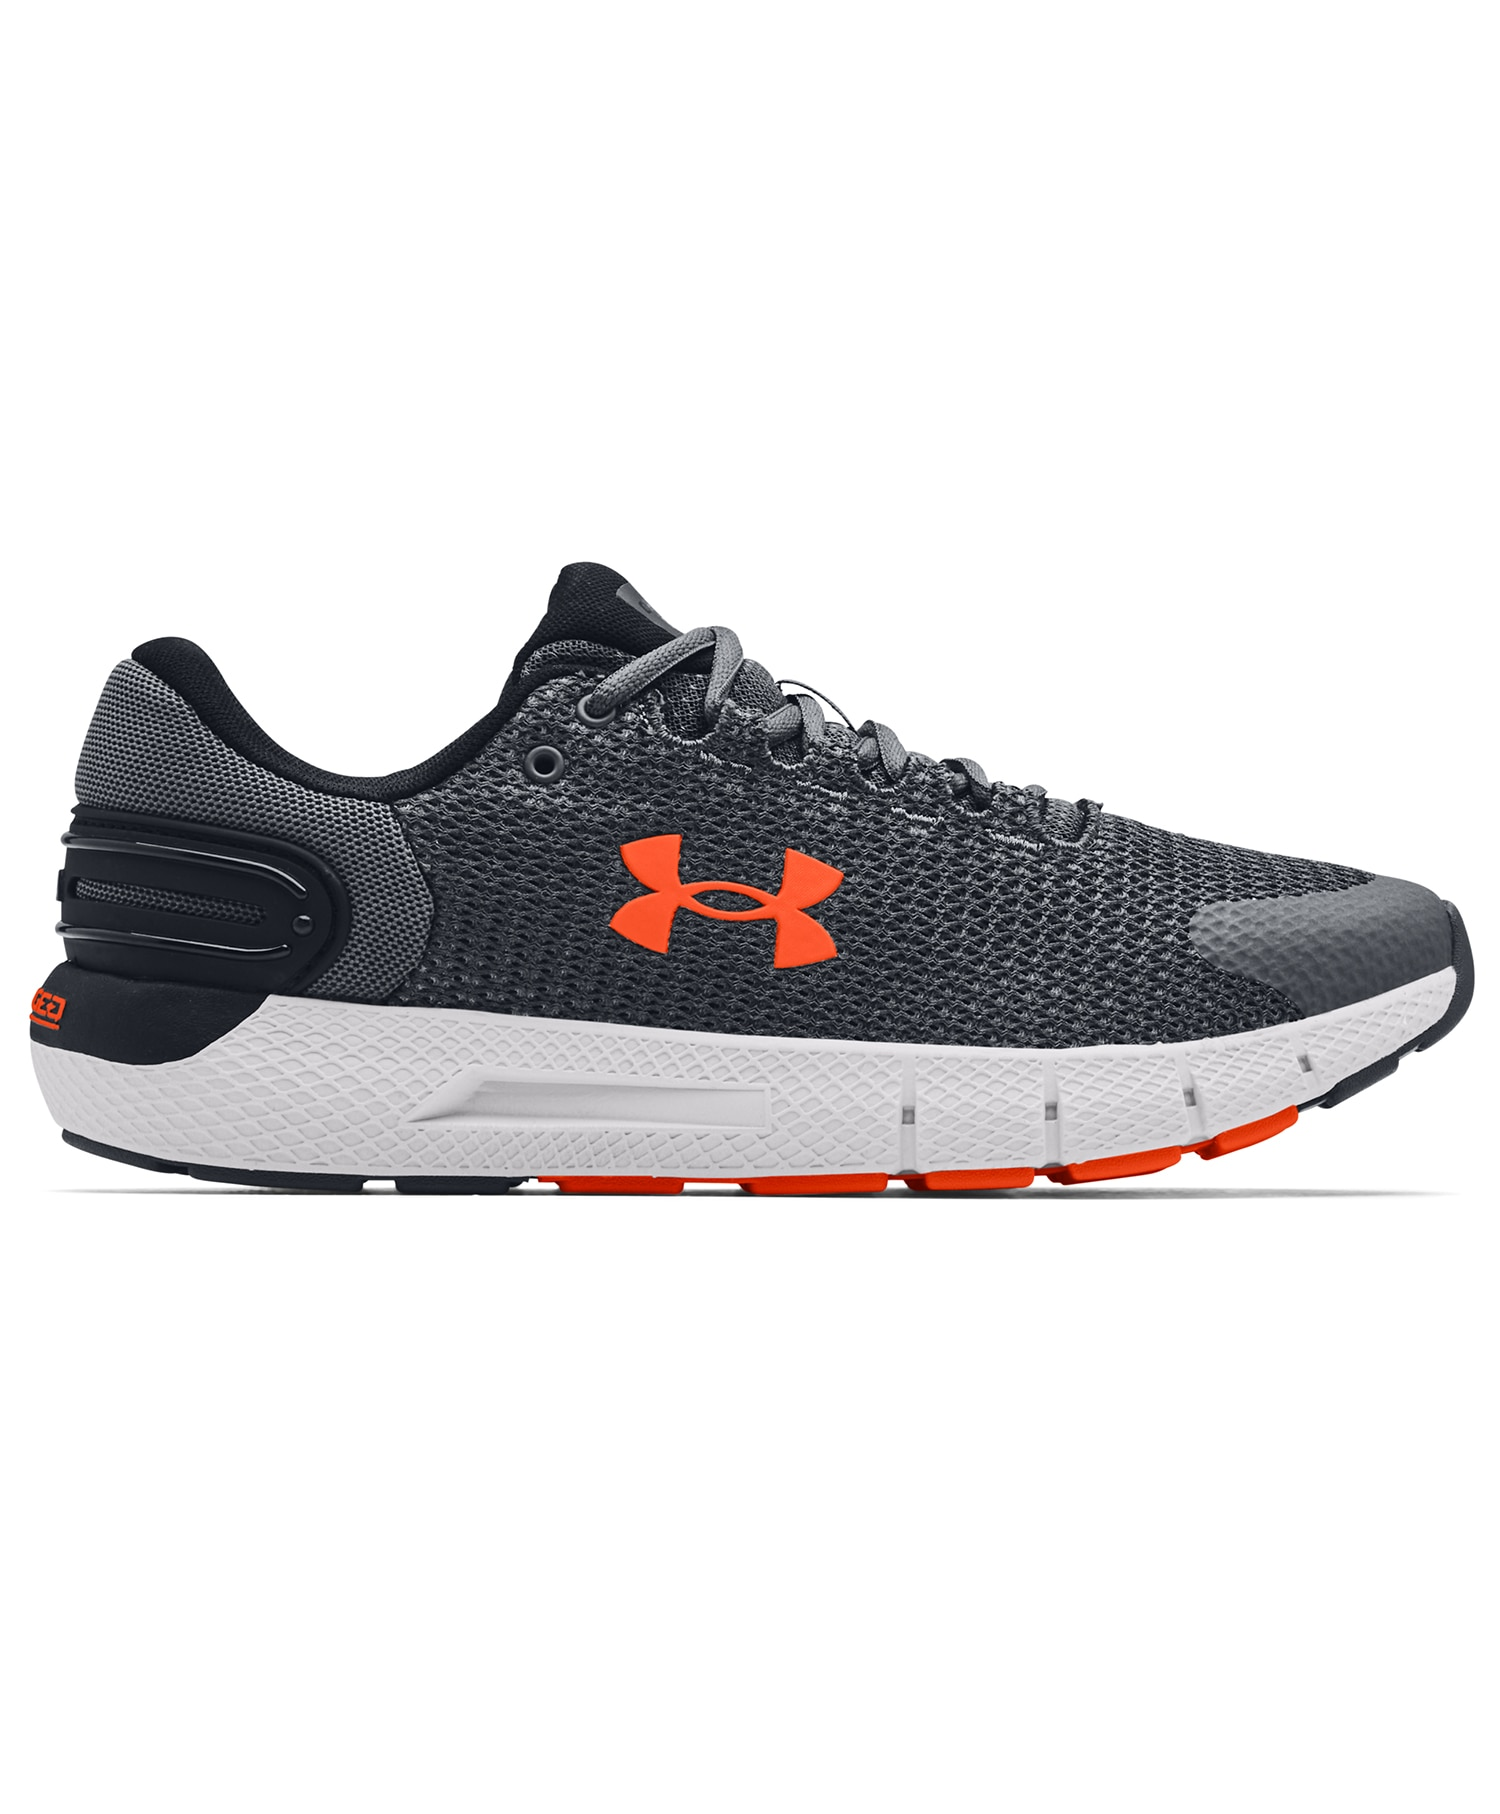 Under Armour Charged rouge